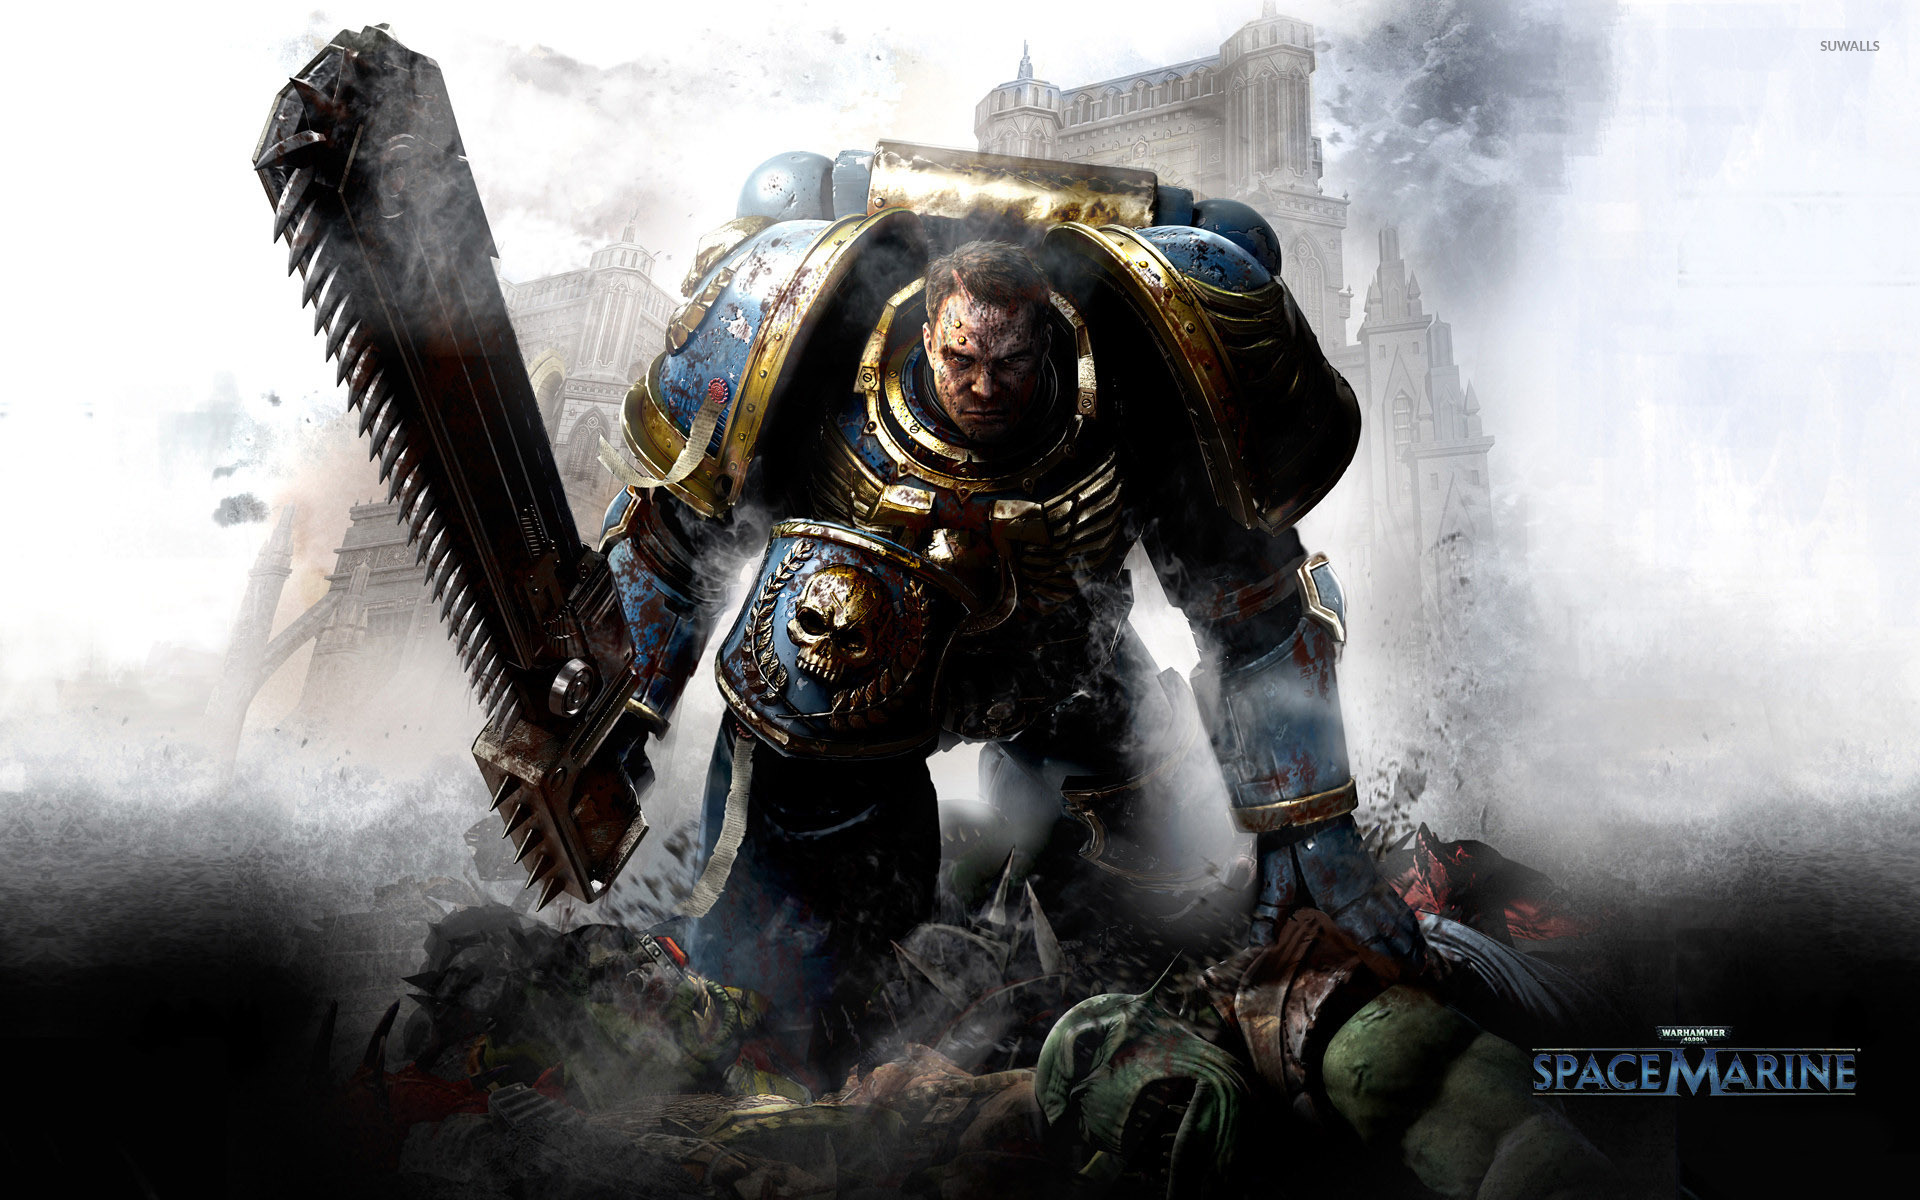 Space Marines [3] Wallpaper